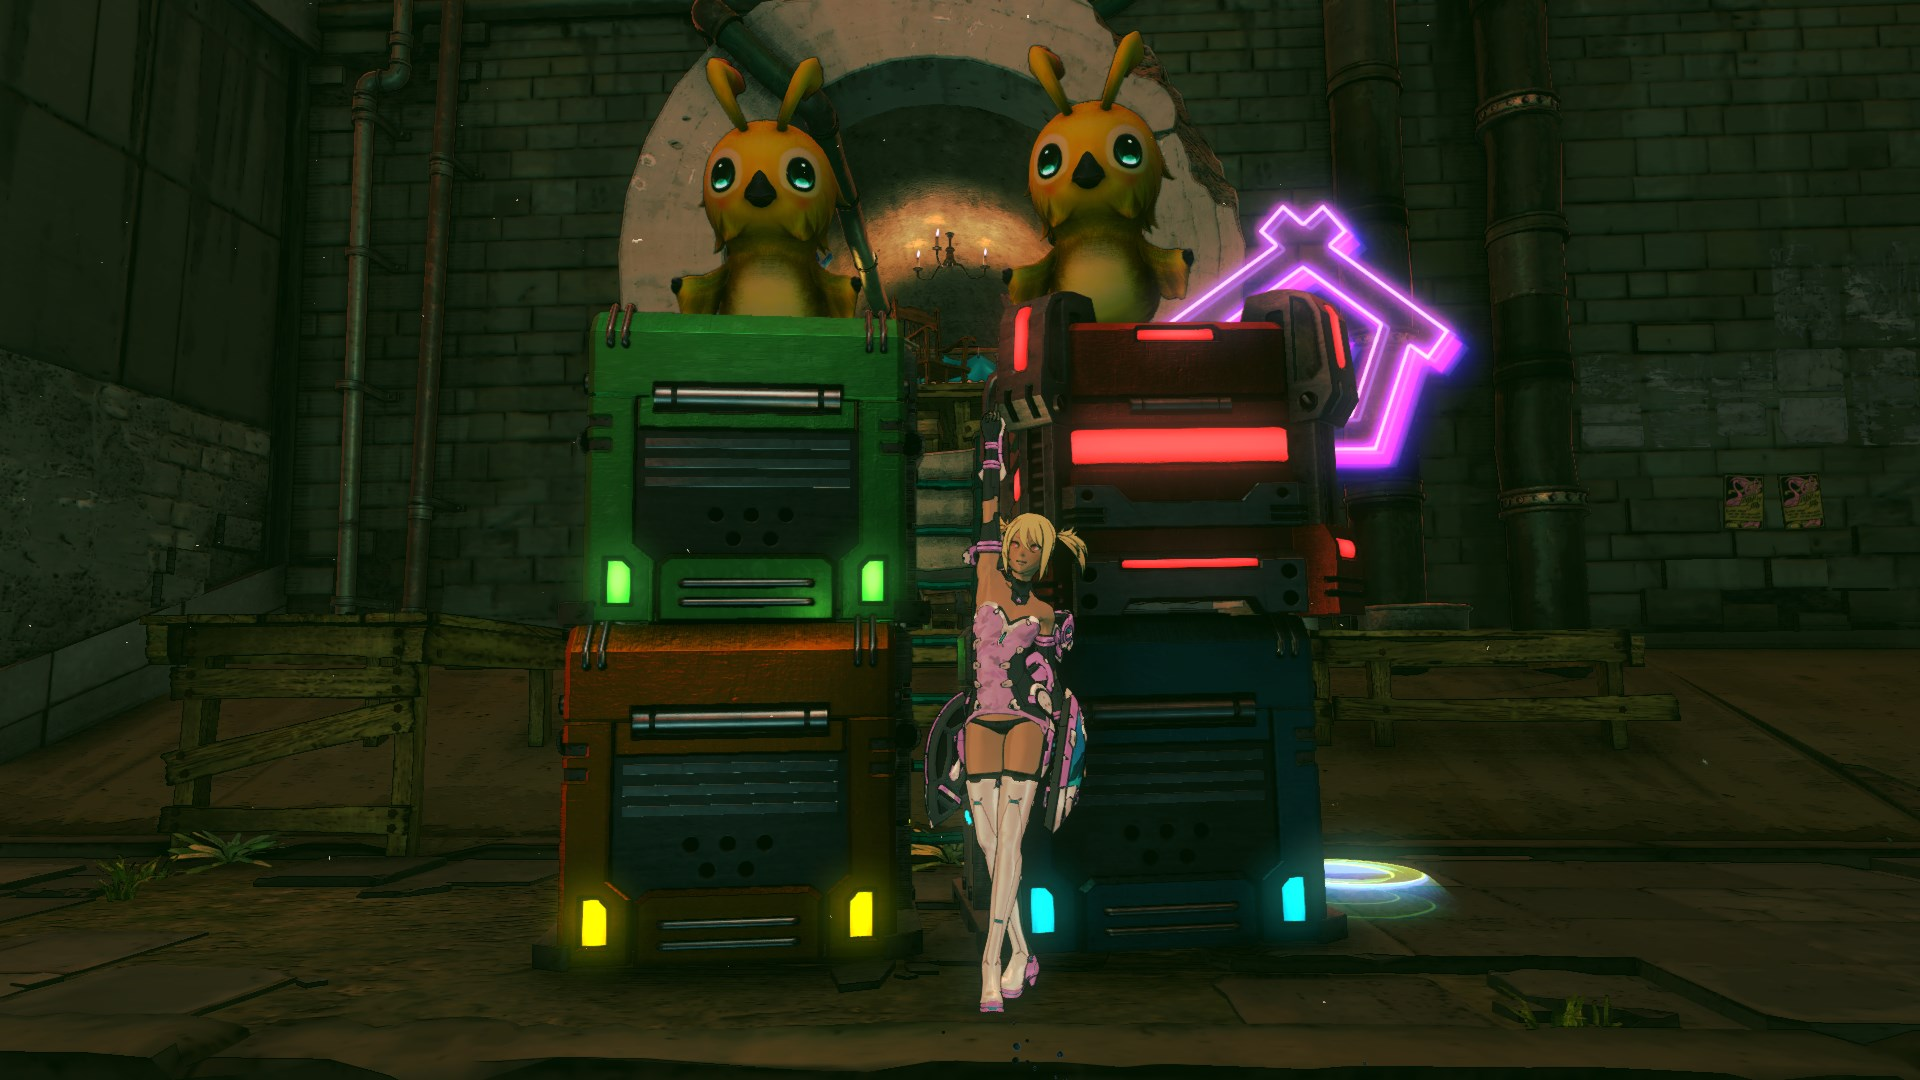 The Crazy Kitten costume and the PSO2 container and Rappy photo items included with the DLC.